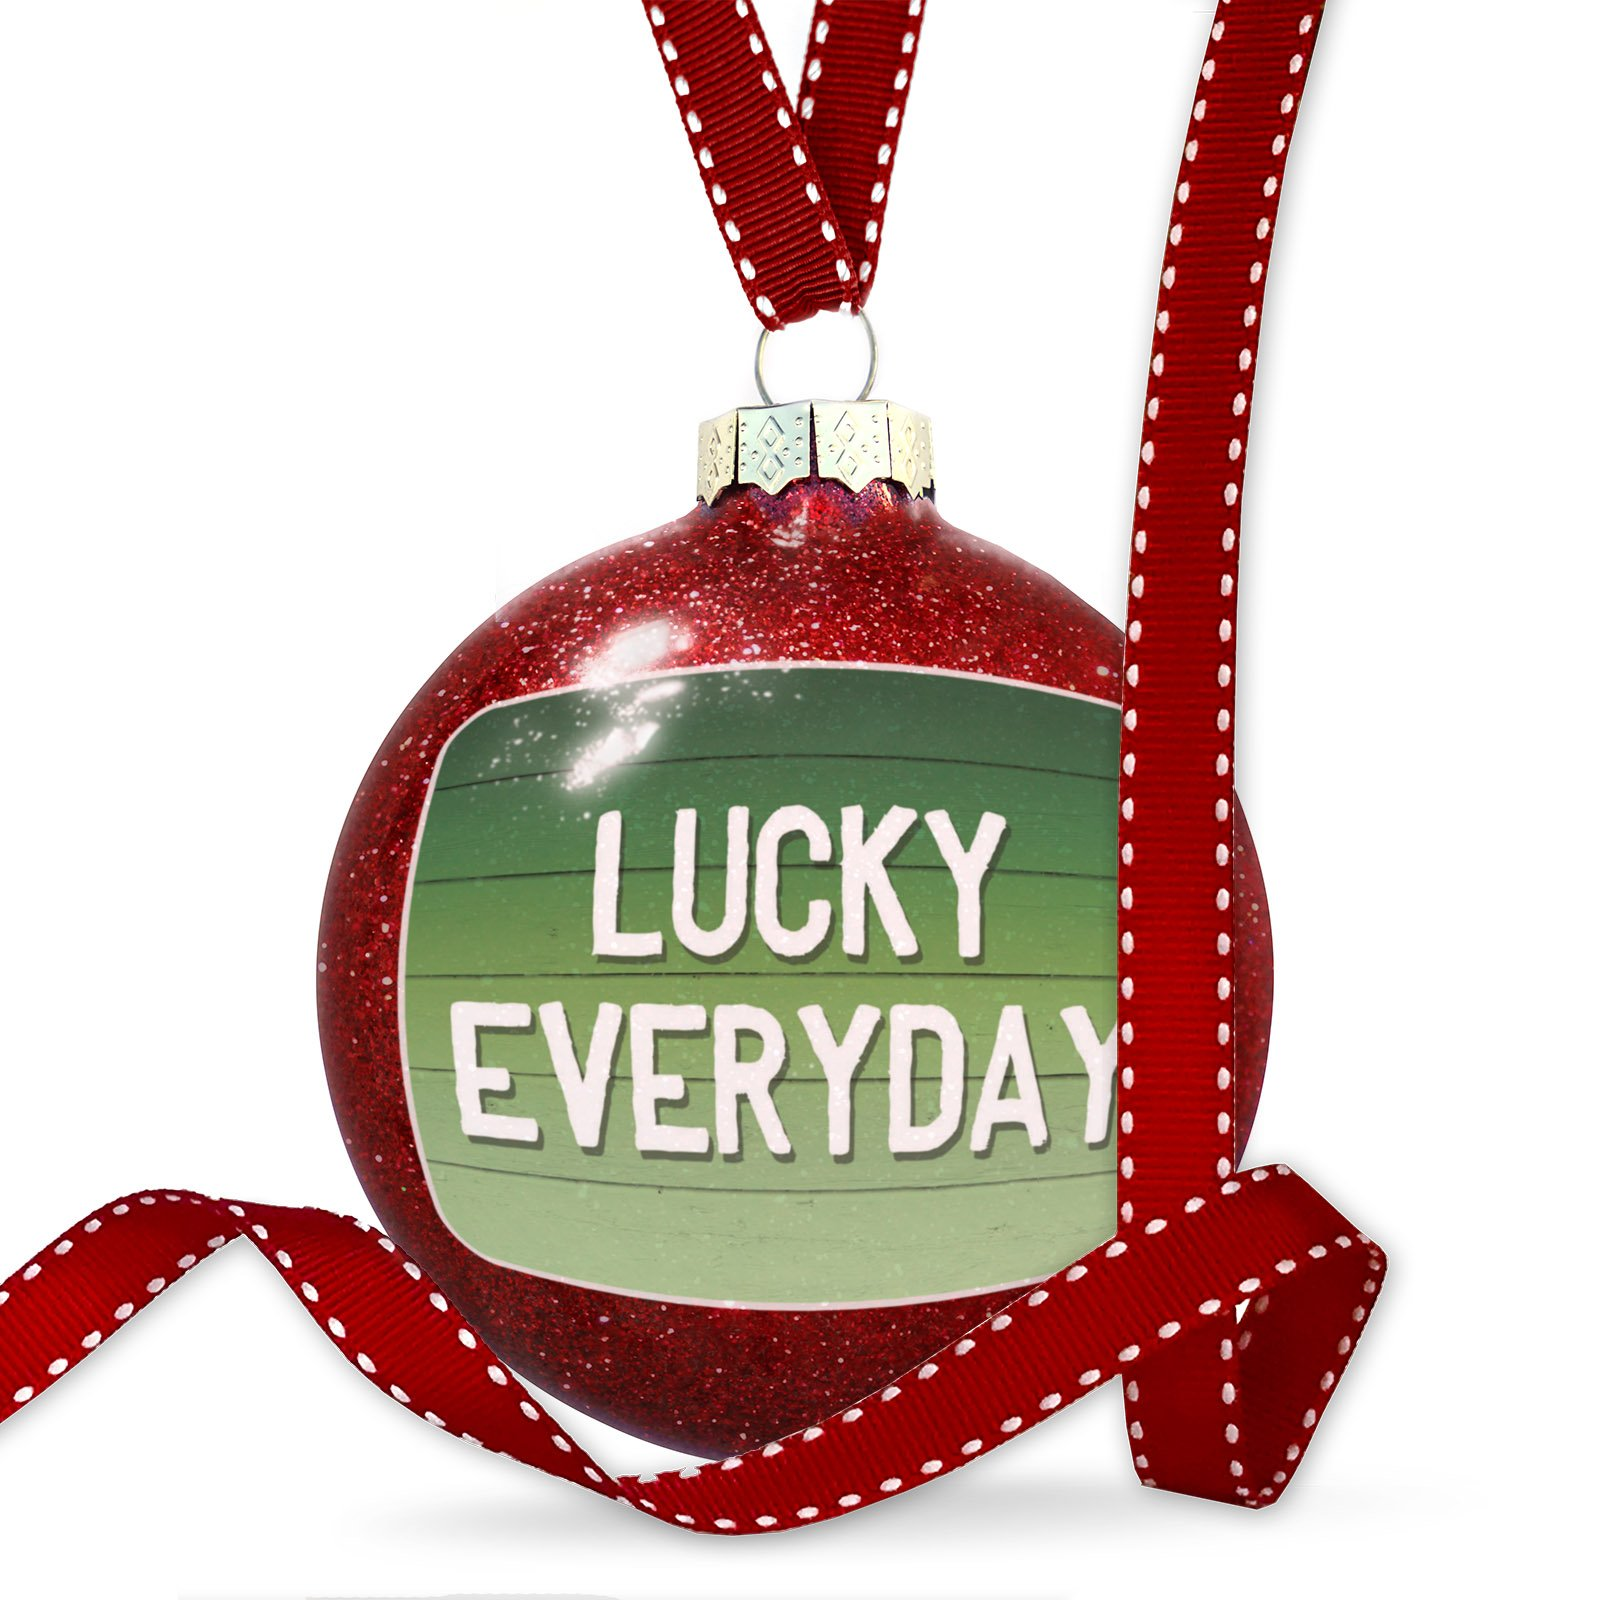 Christmas Decoration Lucky Everyday St. Patrick's Day Green Fade Ornament by NEONBLOND